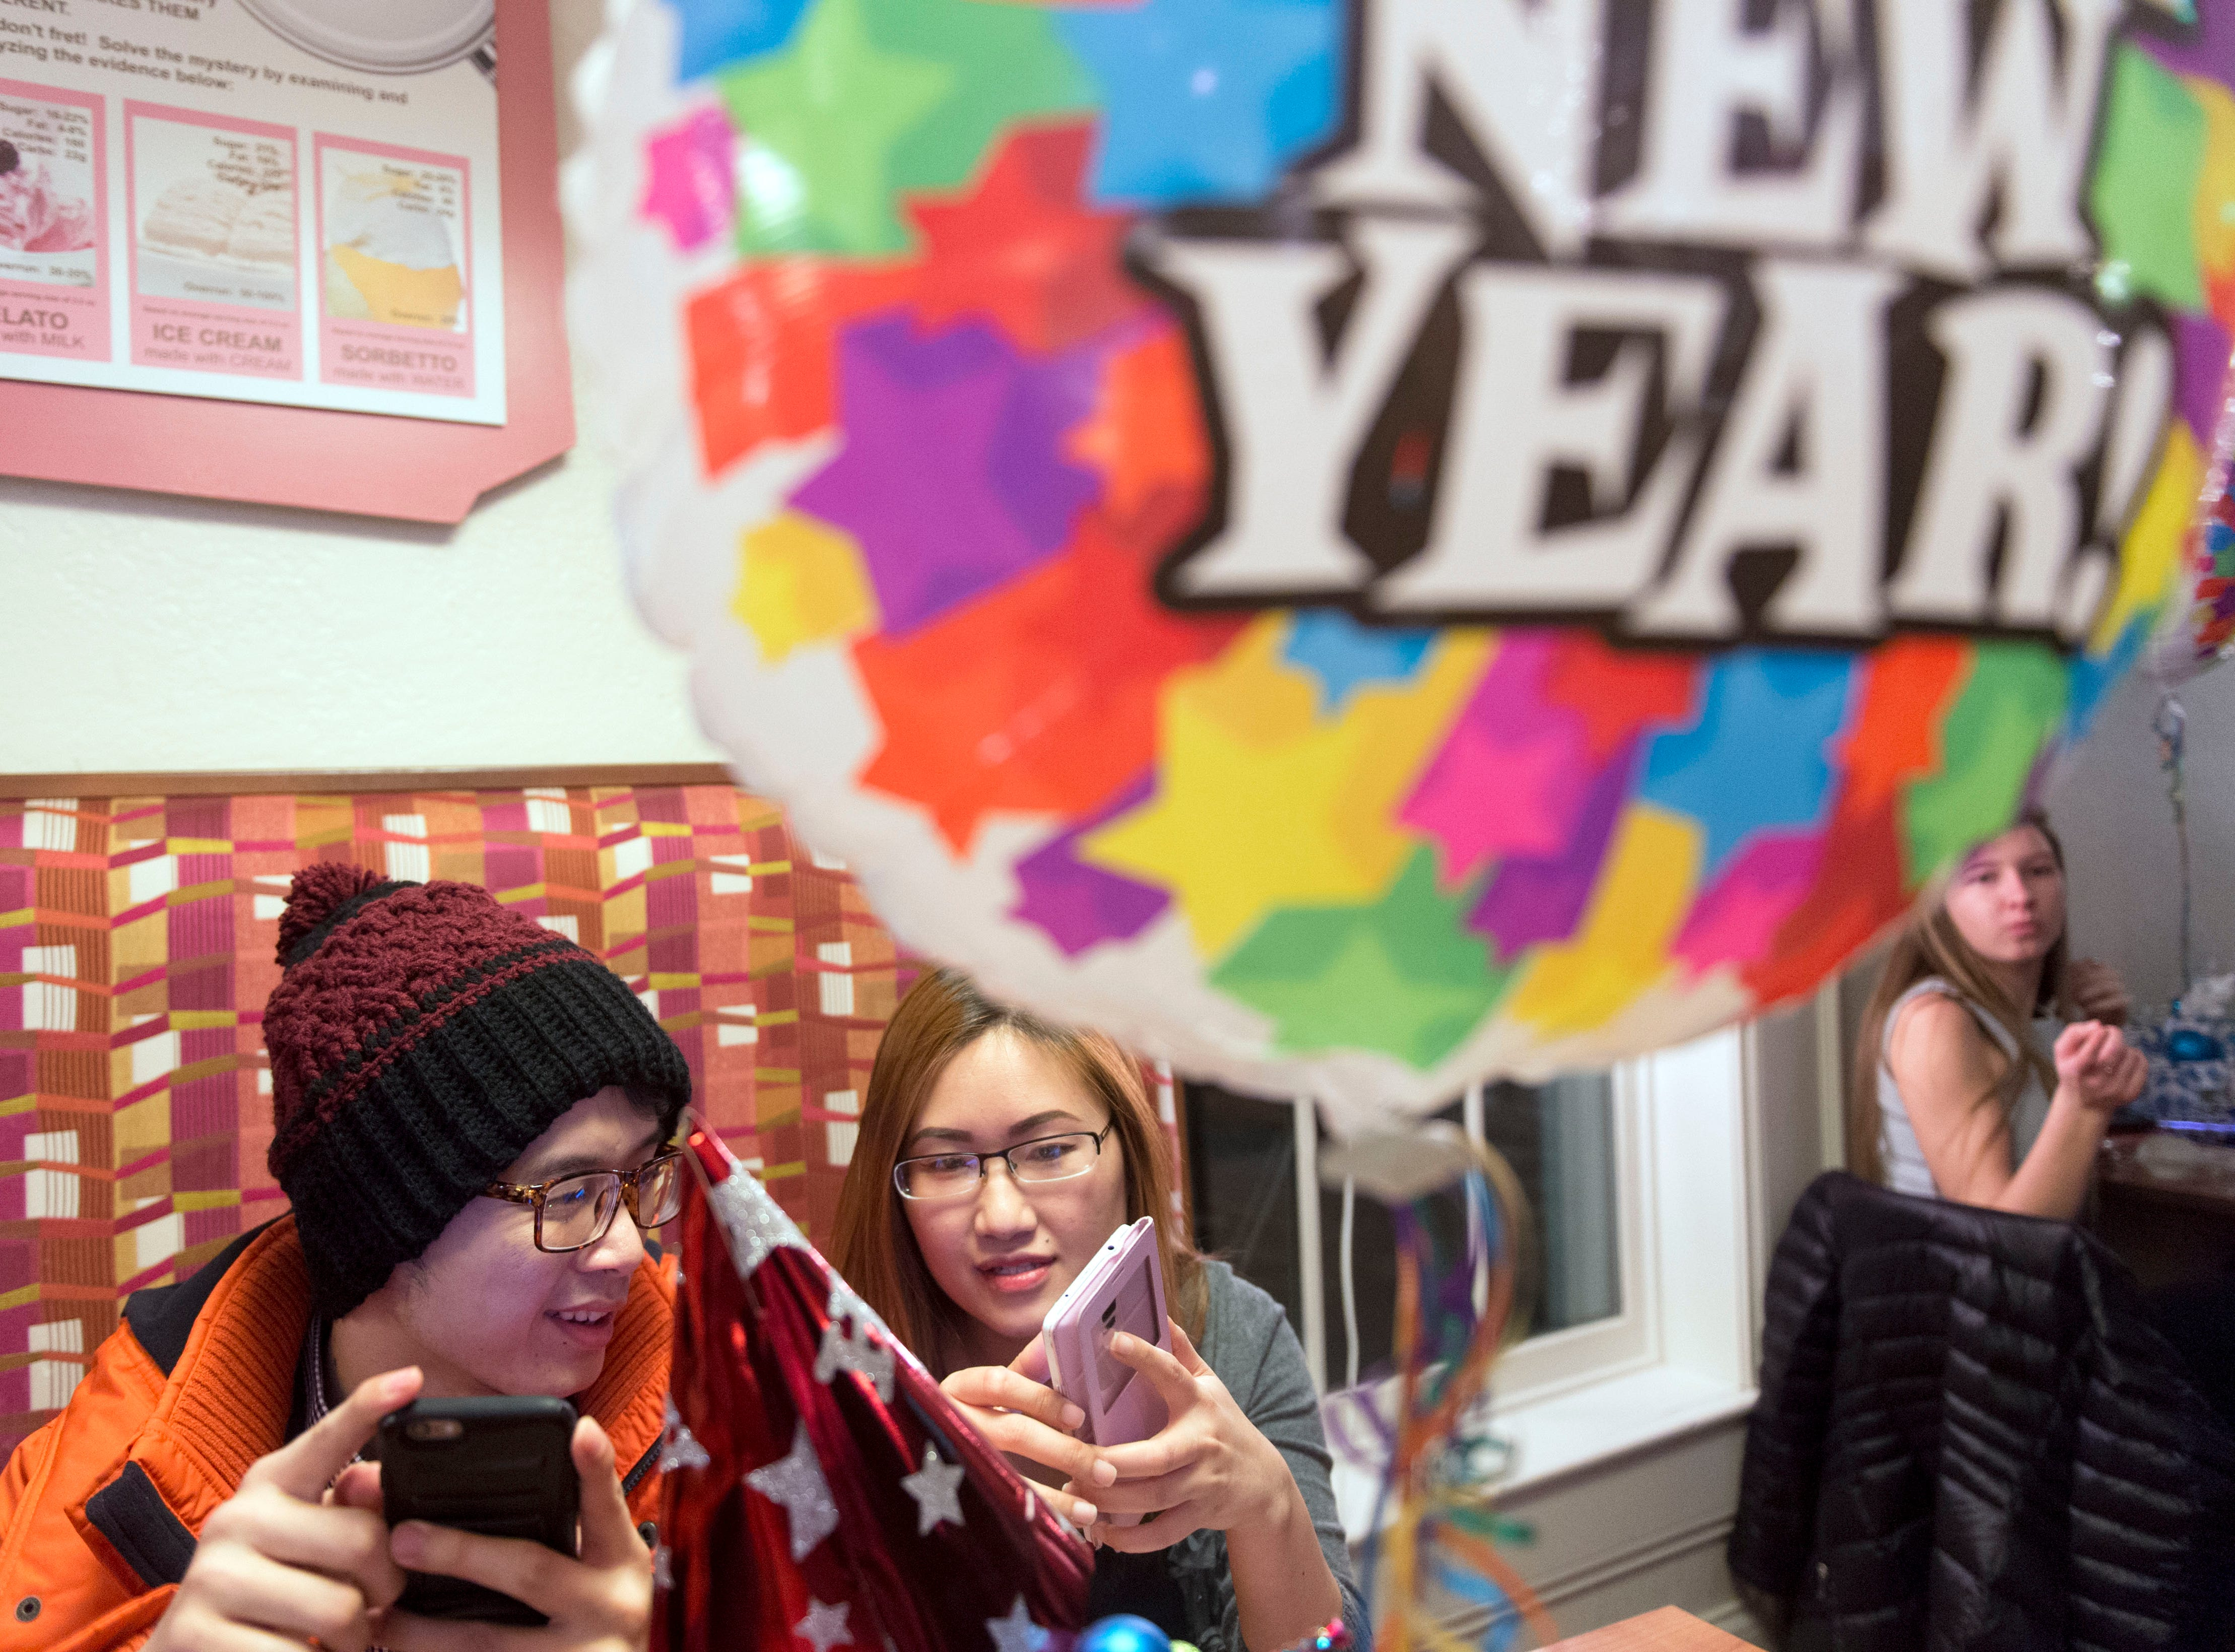 Andy Ngo and Sarah Do spend part of their evening at Collata Gelato on New Year's Eve, Thursday, December 31, 2015.